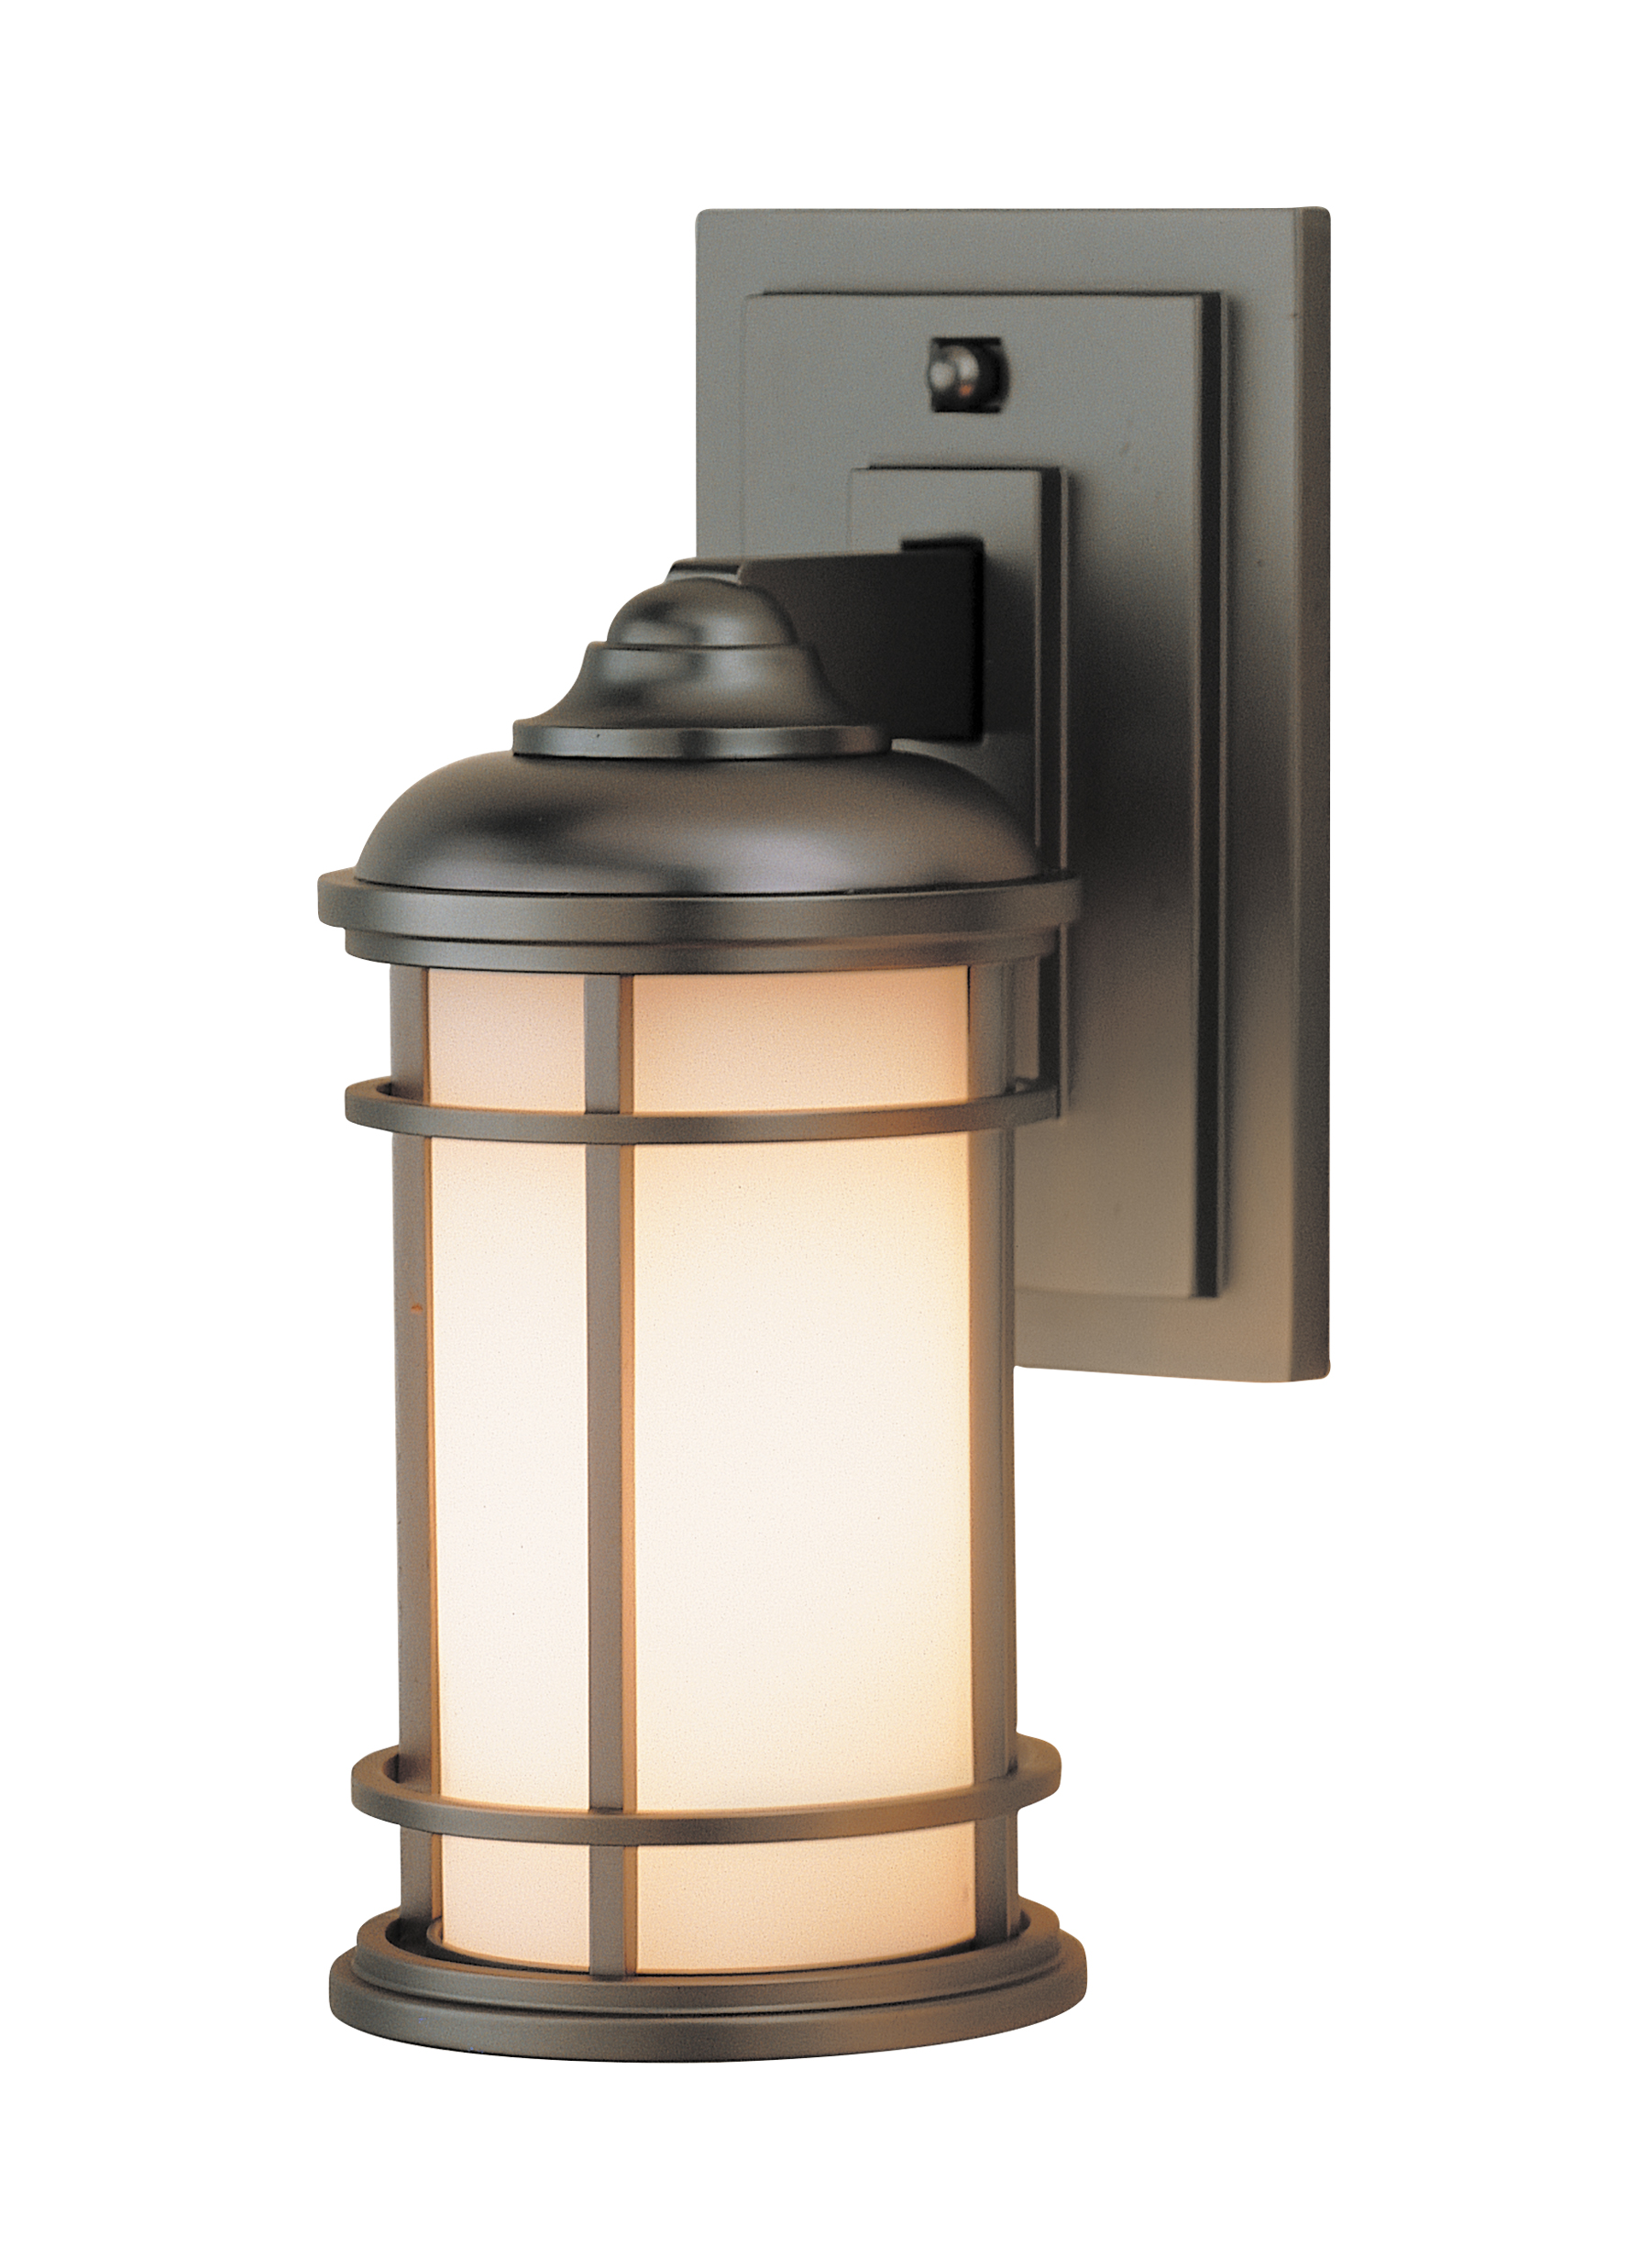 Murray Feiss Outdoor Lighting Ol2200bb led1 light wall lanternburnished bronze loading zoom workwithnaturefo